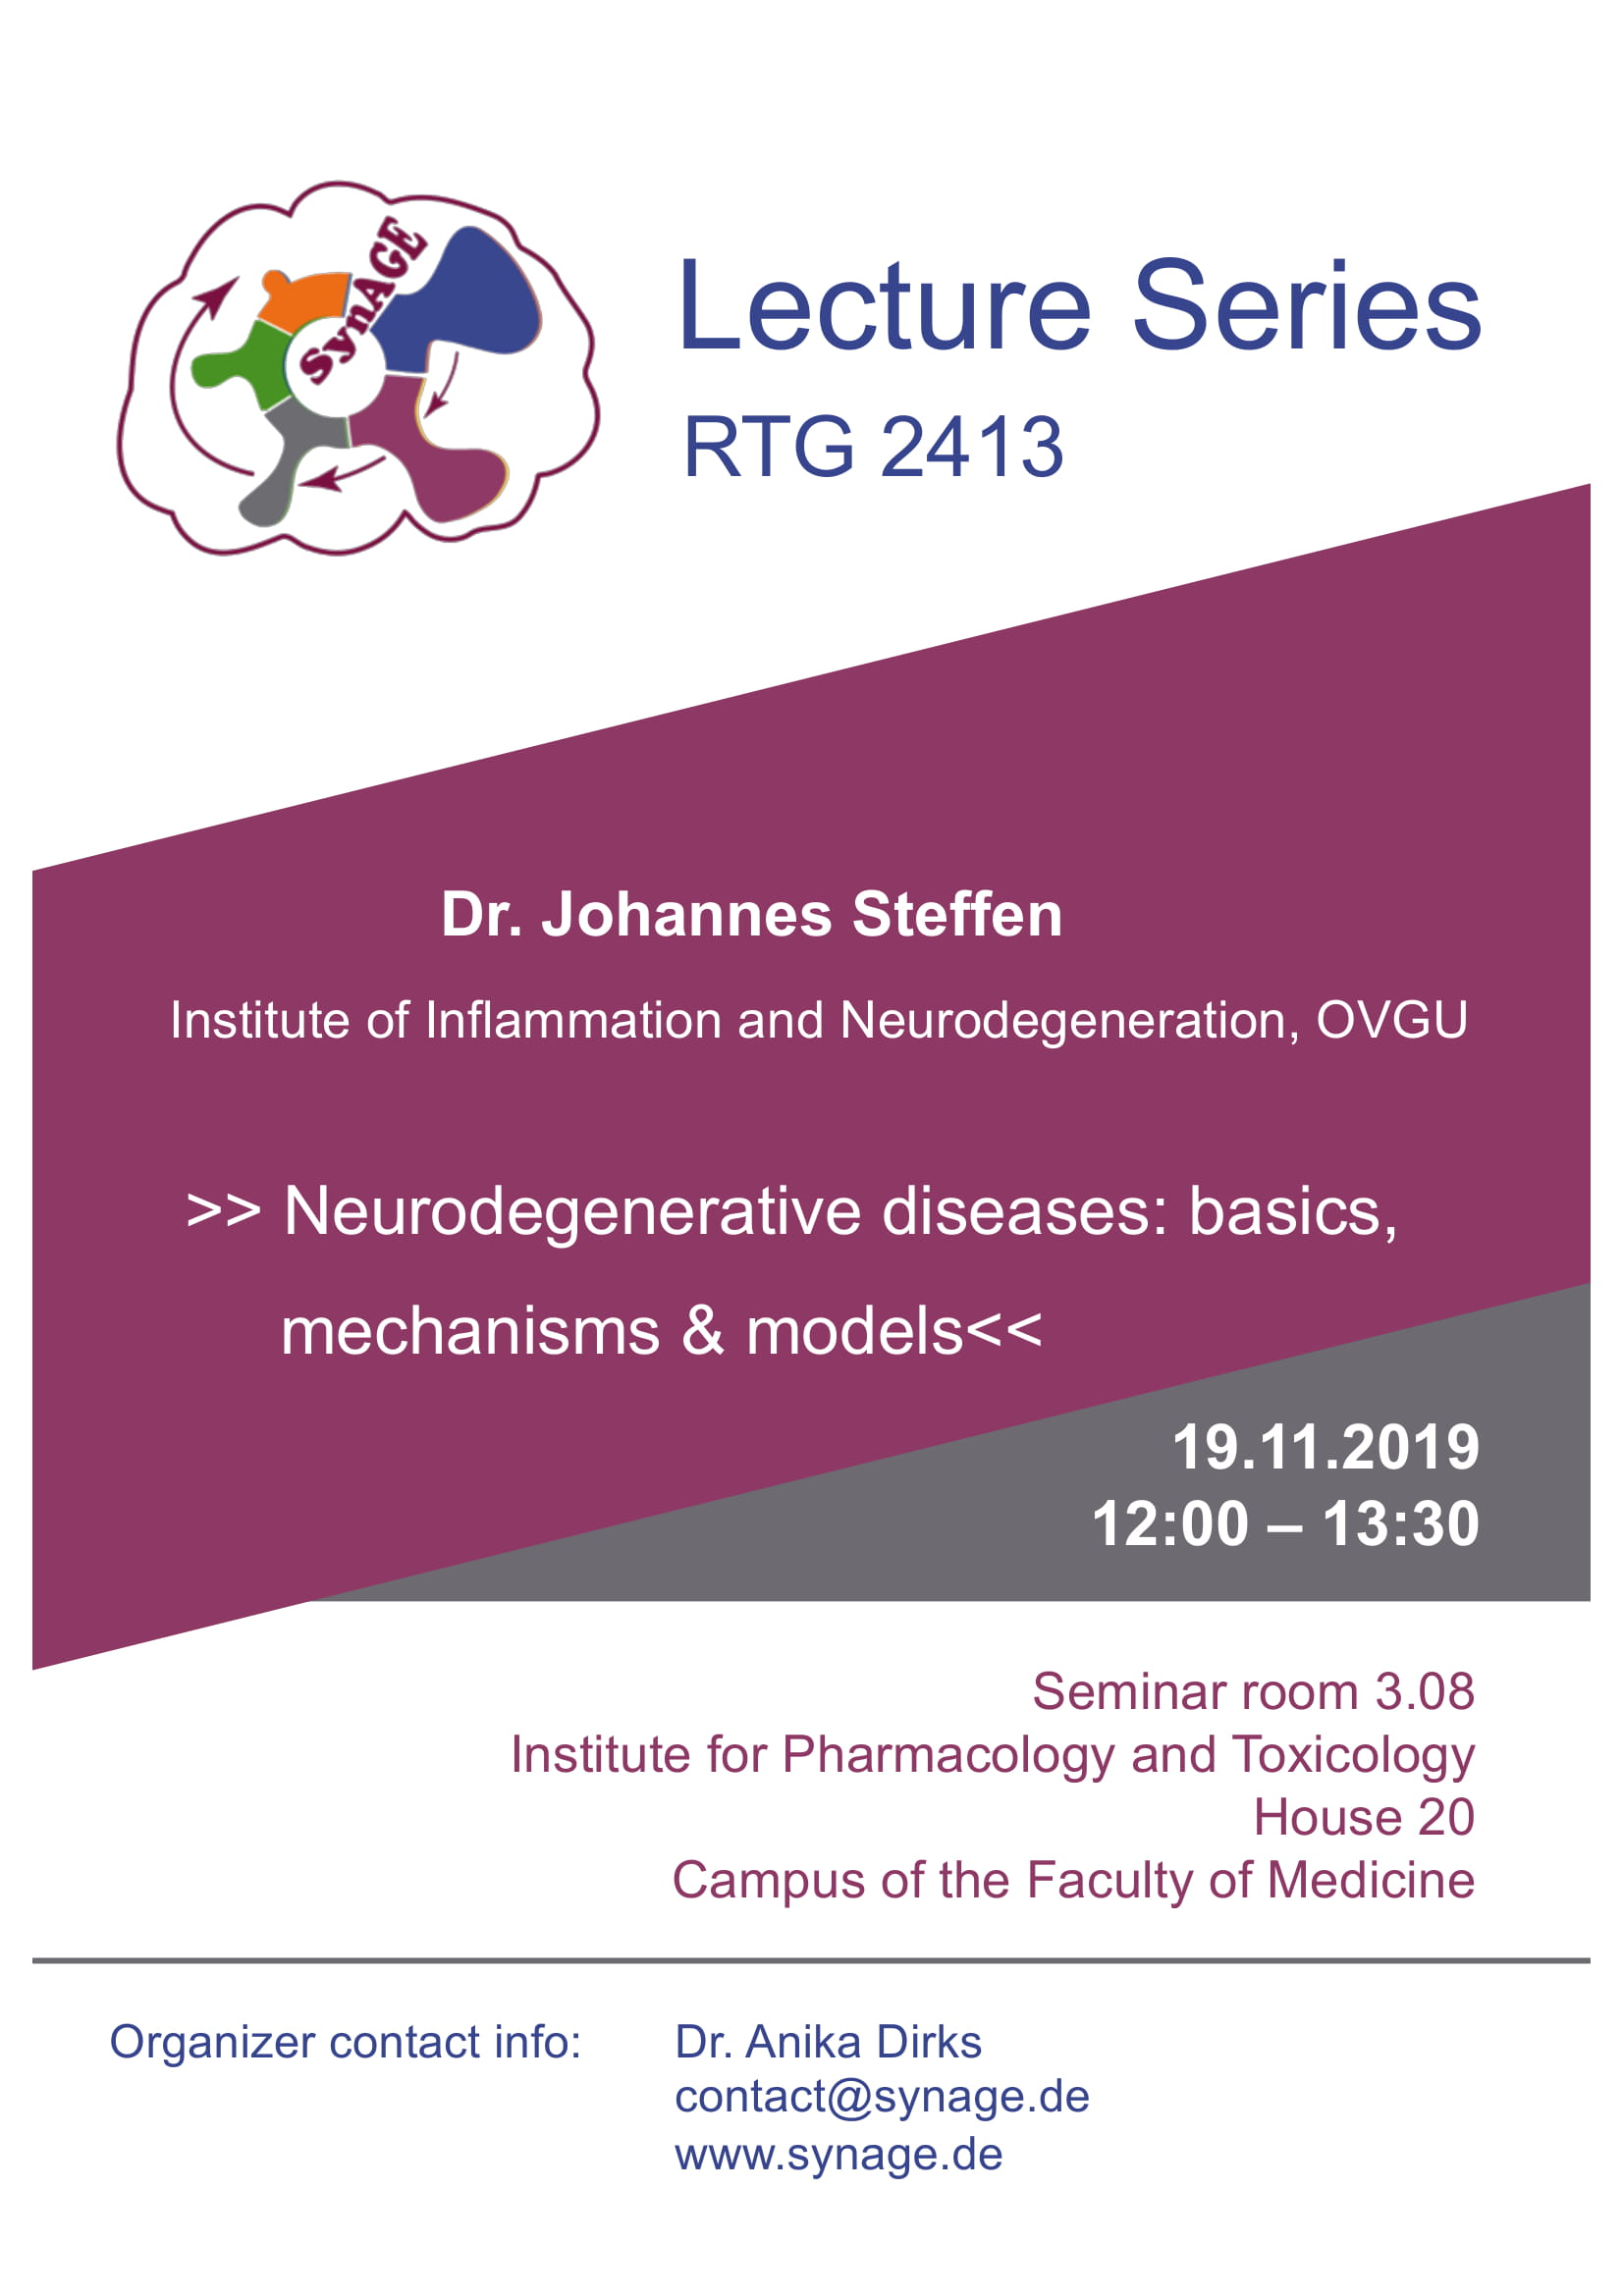 RTG 2413 SynAGE Lecture Series: Neurodegenerative diseases: basics, mechanisms & models @ Institute of Pharmacology and Toxicology, House 20, Seminarroom 3.08